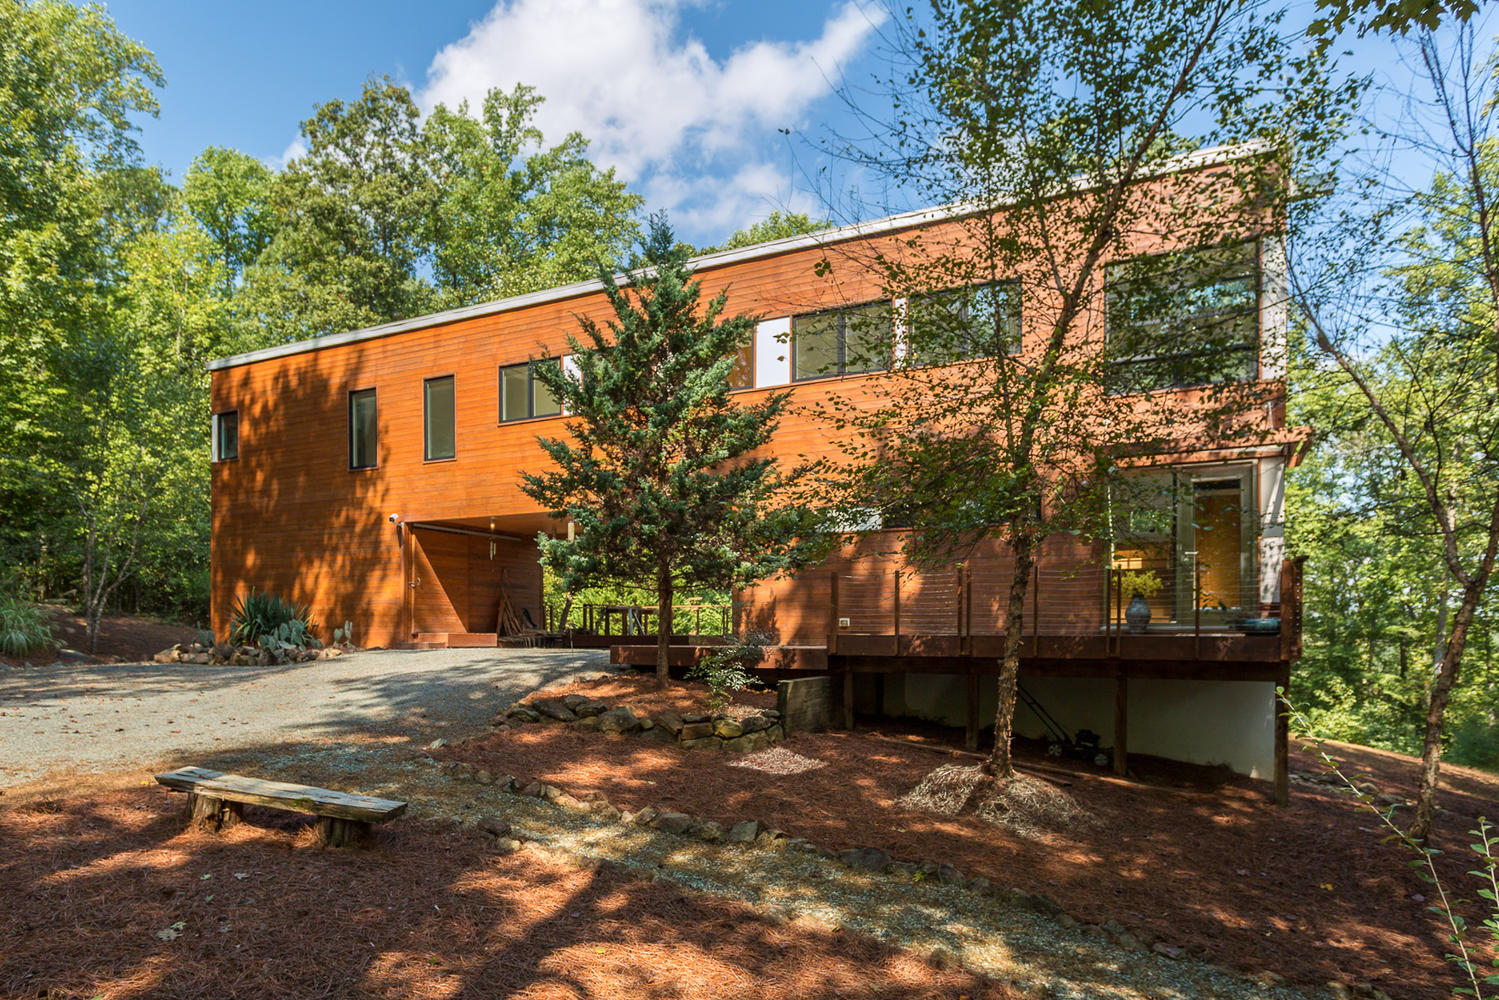 Original Dwell House Now at Auction